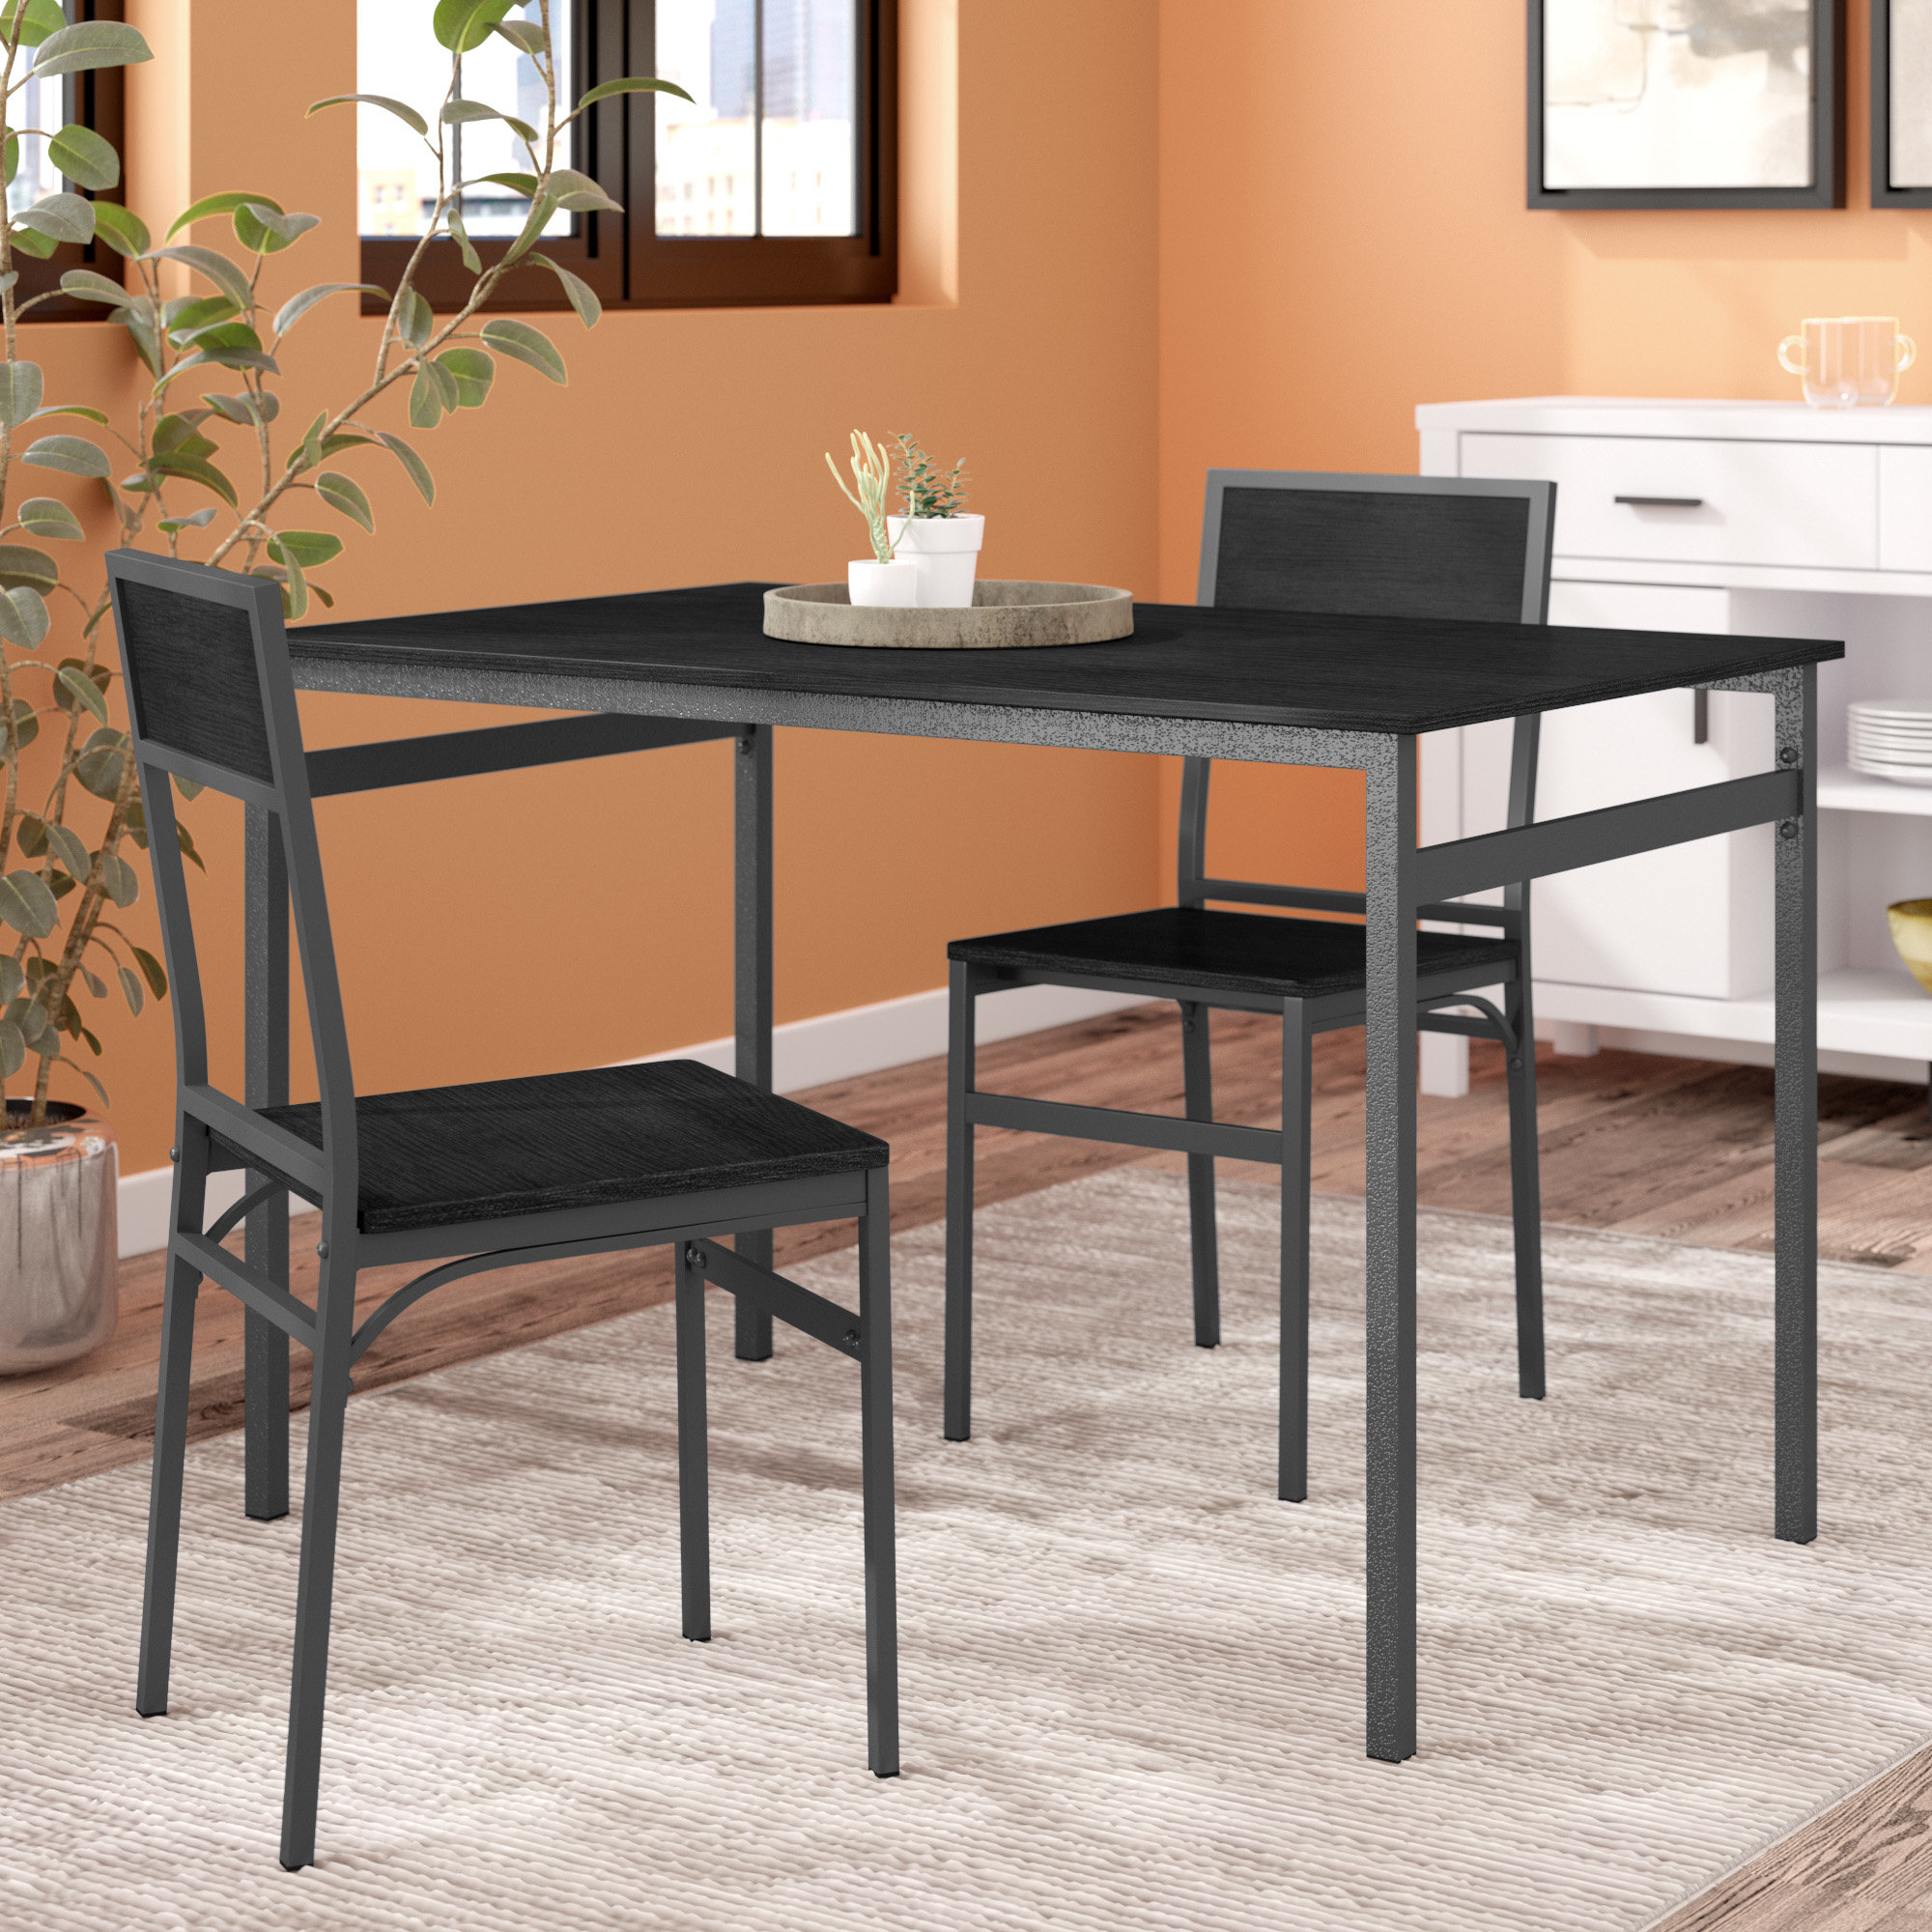 Springfield 3 Piece Dining Set Pertaining To Most Recently Released Mizpah 3 Piece Counter Height Dining Sets (Image 18 of 20)